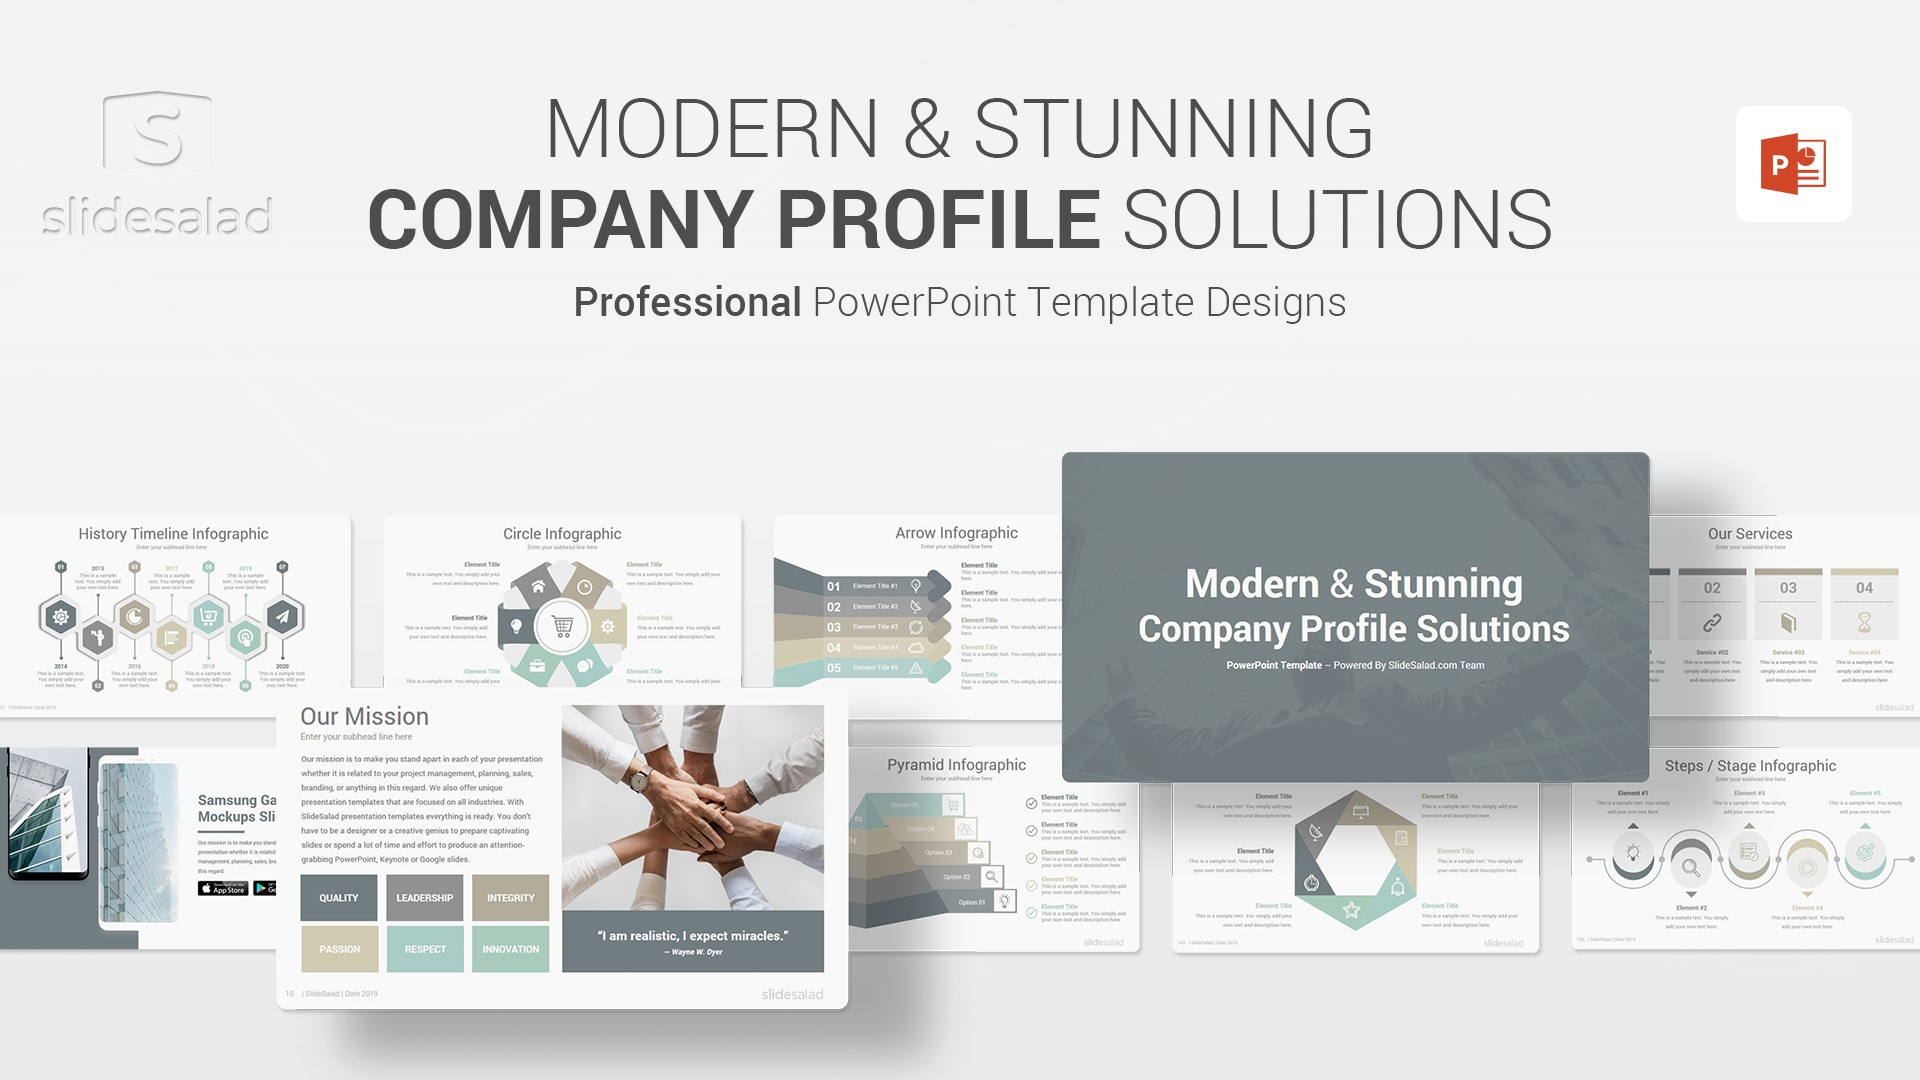 Modern Company Profile PowerPoint Template Designs - Nice Editable PPT Templates for Presentations